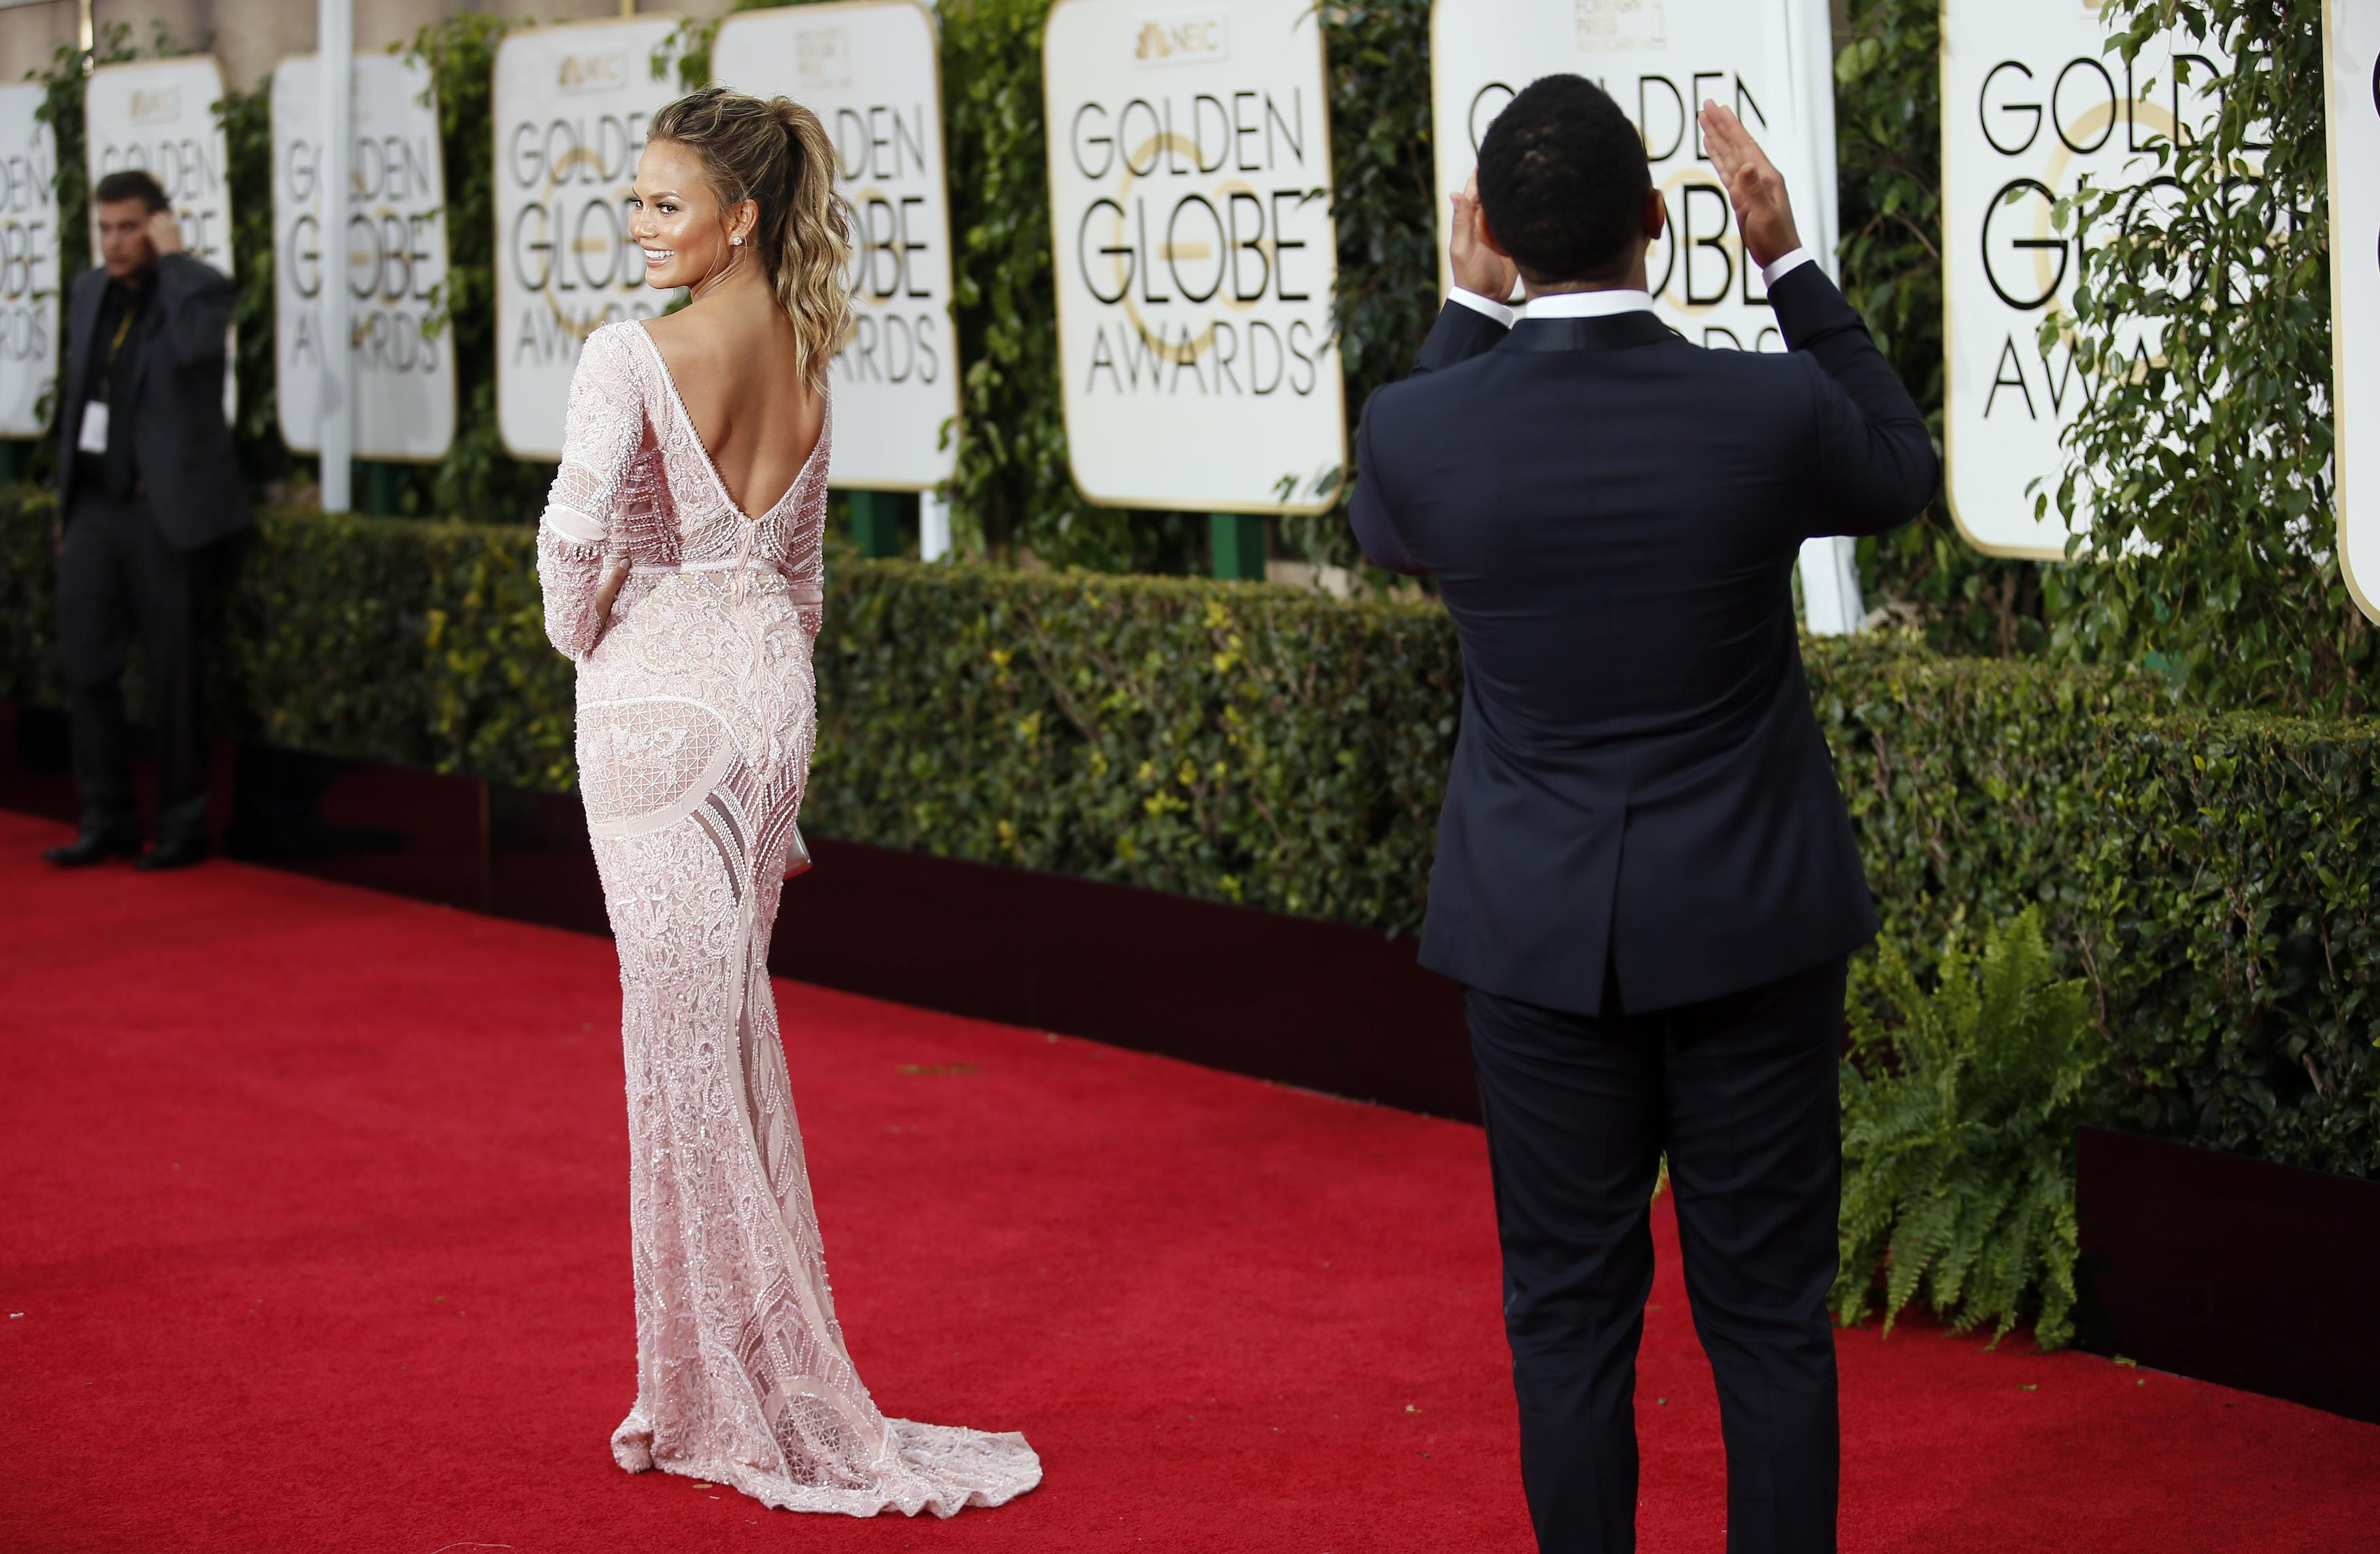 ac80e2ce179 BEST DRESSED  Chrissy Teigen looked stunning in a soft pink Zuhair Murad  gown. The model was accompanied by her husband